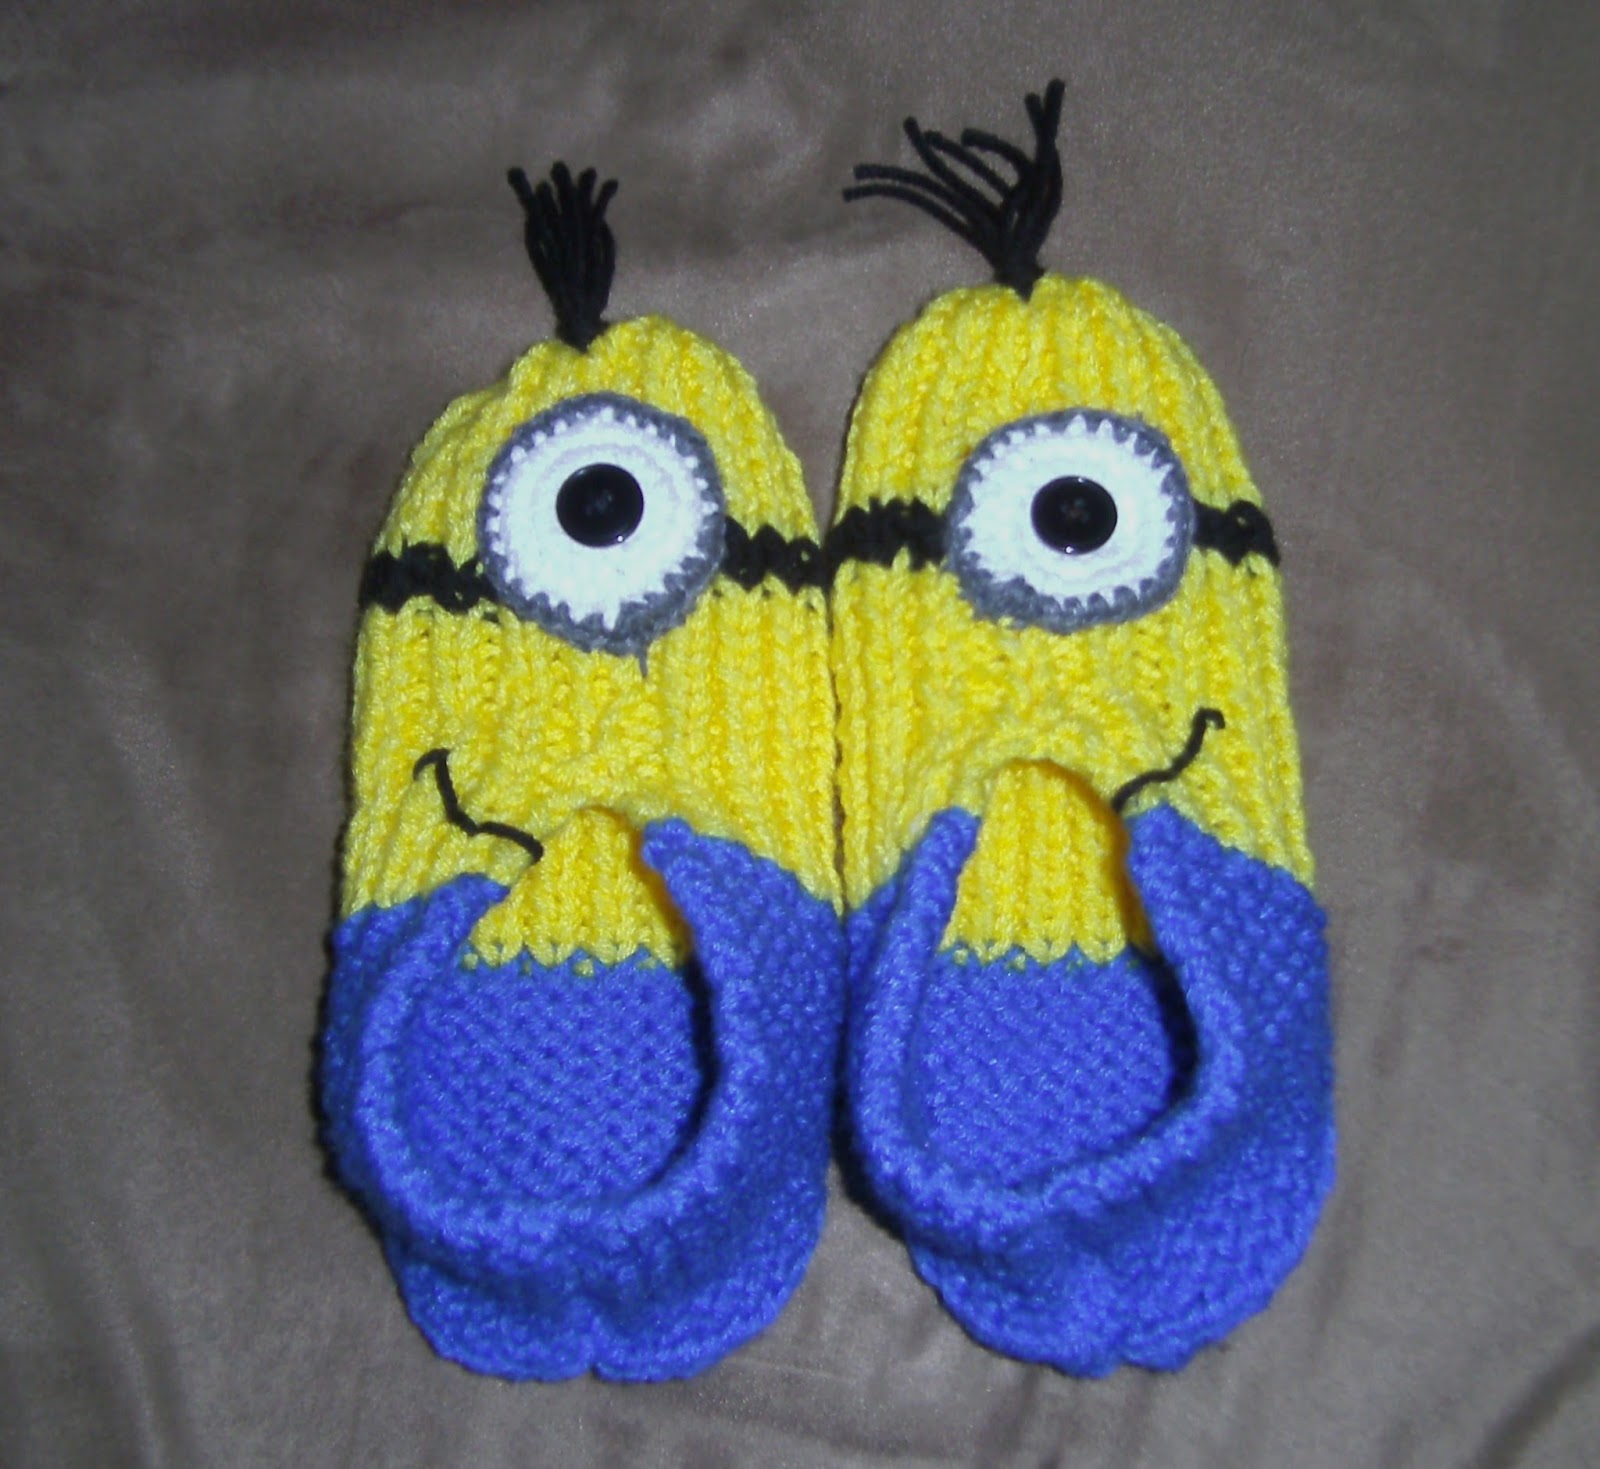 Free Knitting Patterns Baby Hat : Timeless Creations: Knitted Minion Slippers